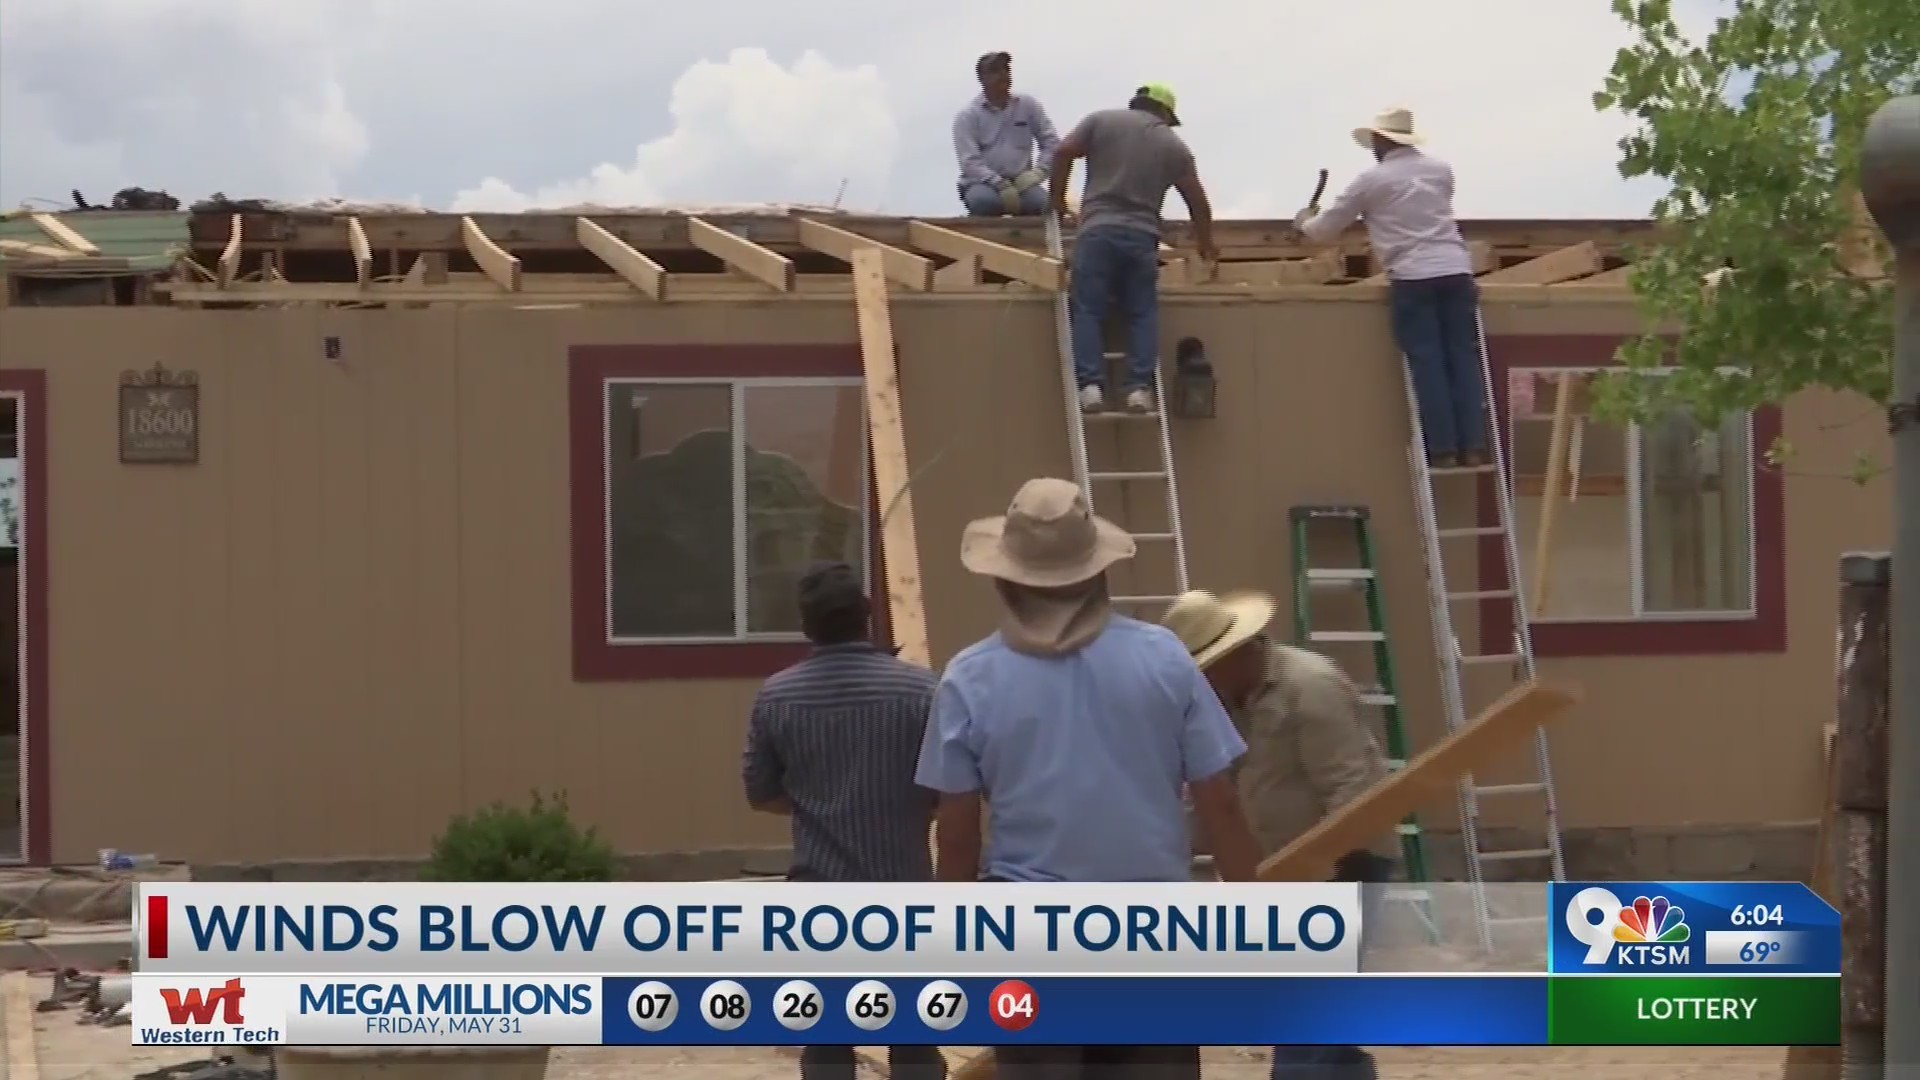 Family in tornillo work to fix roof damage caused by high winds